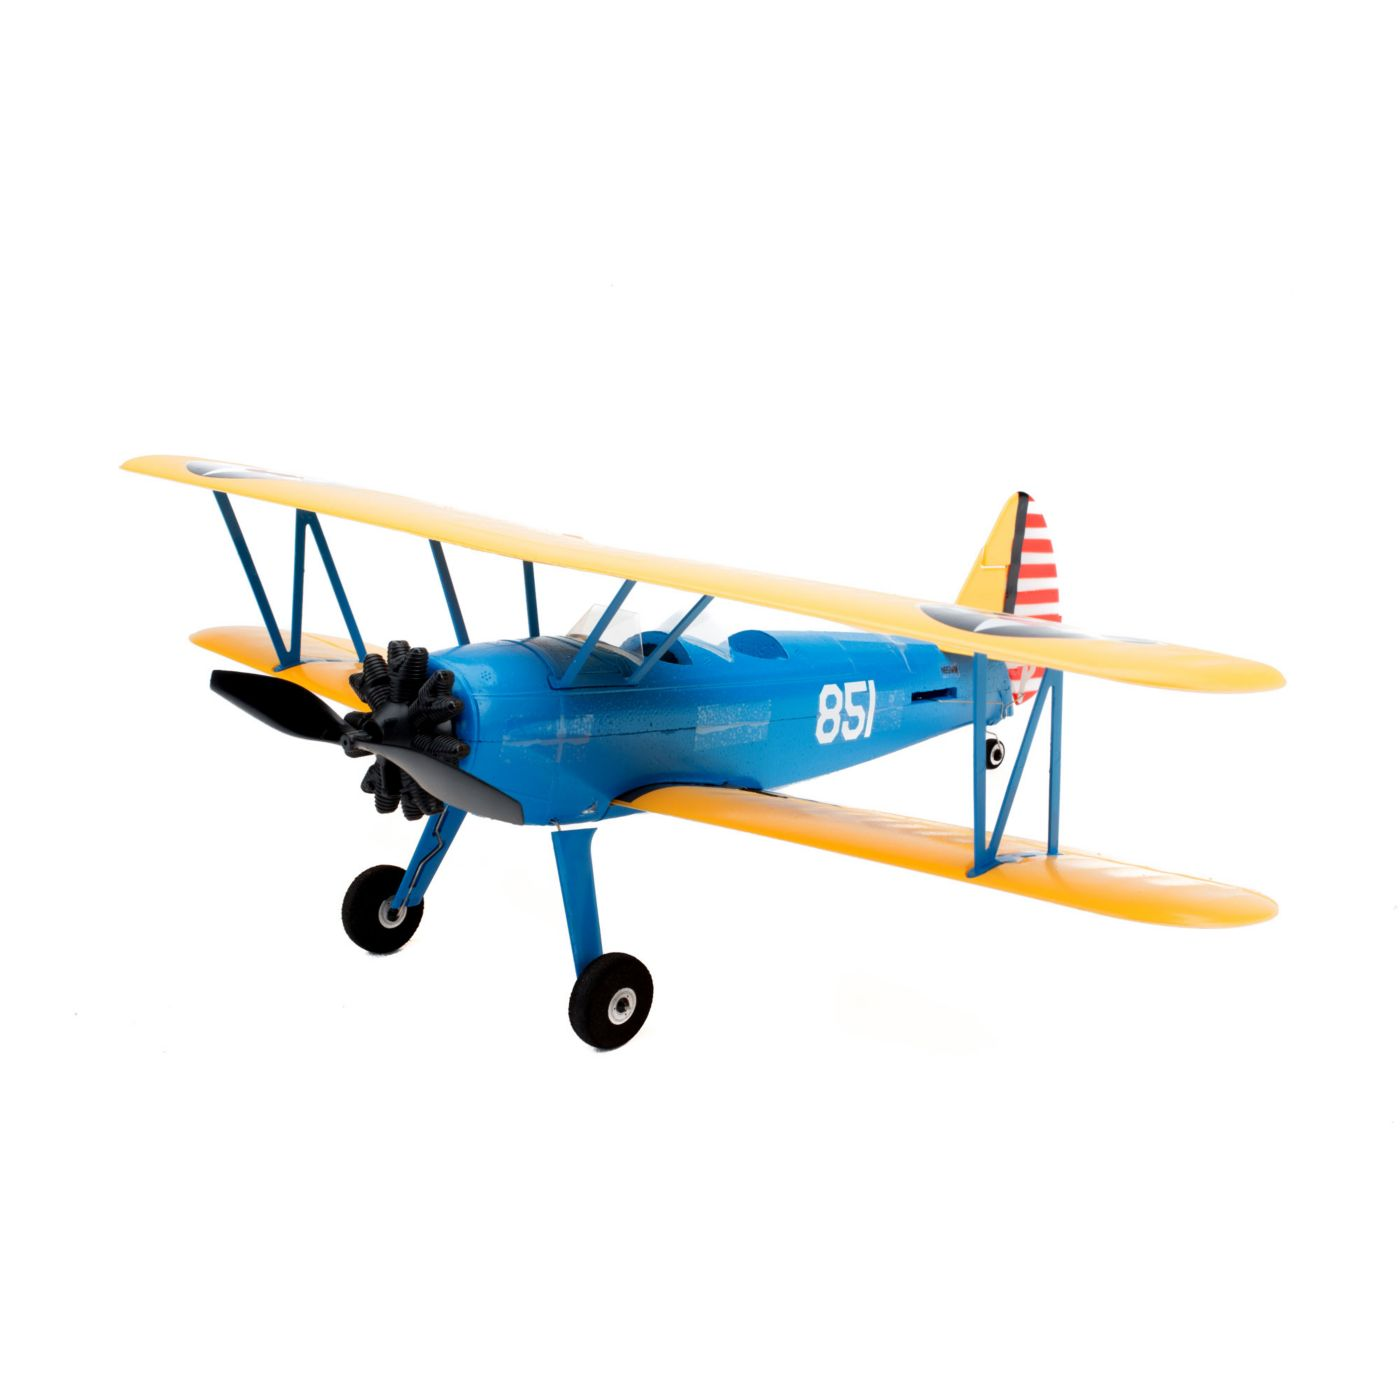 E-flite UMX™ PT-17 BNF with AS3X® Technology - SNHE